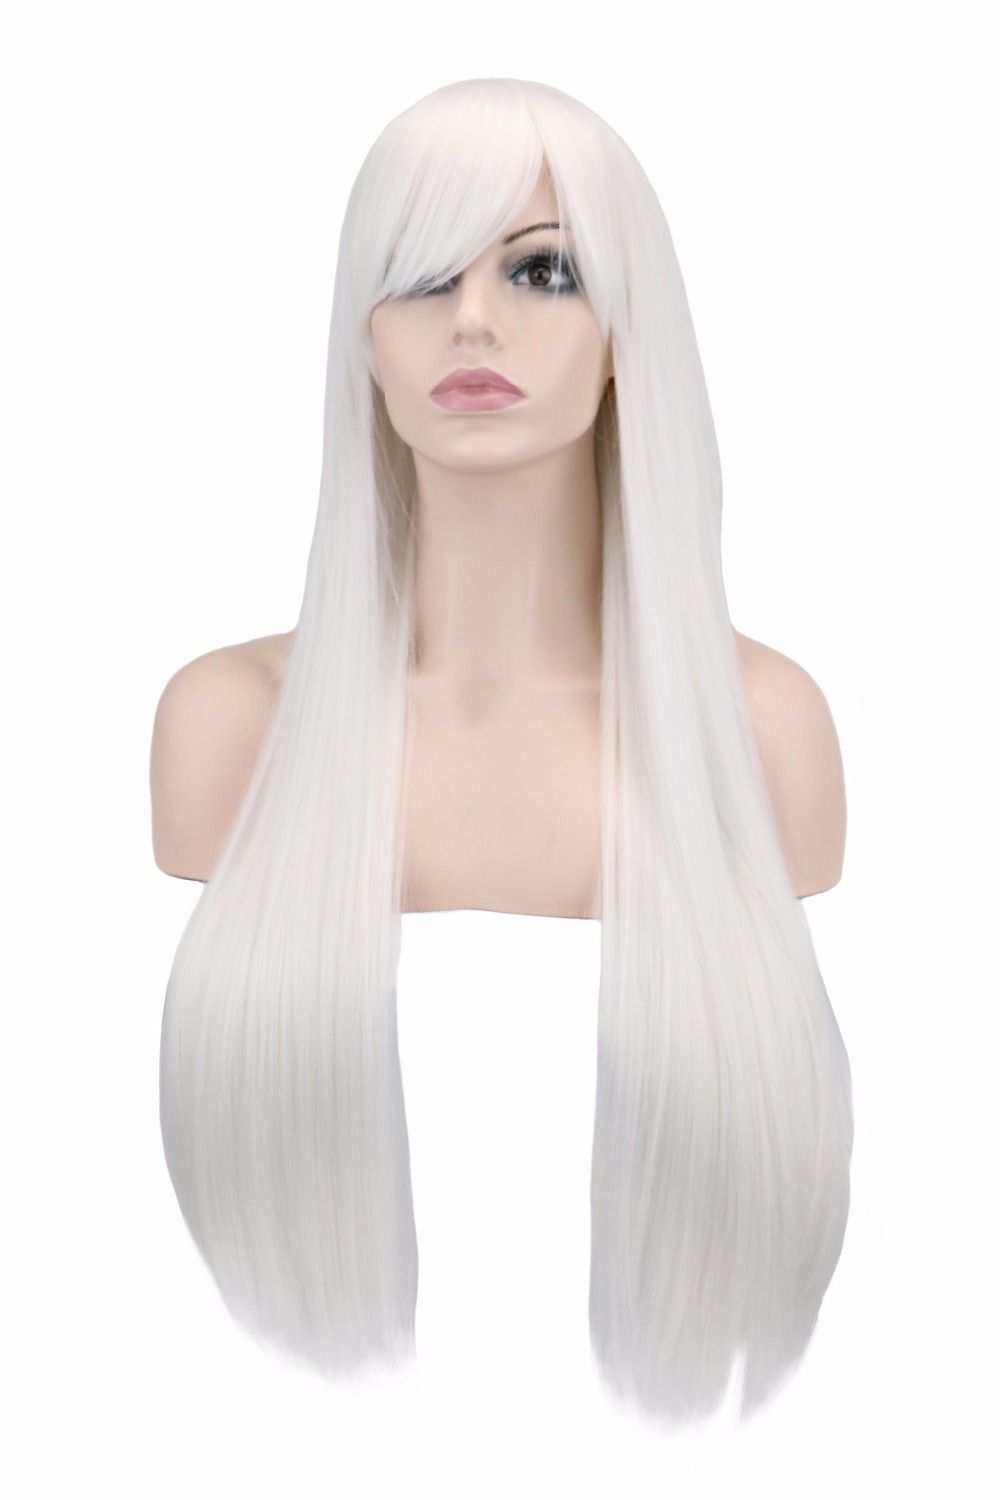 80-100 Cm Long Straight Anime White Wigs Cosplay Costume Party Heat Resistant Synthetic Hair Full Wig Women Men Pelucas